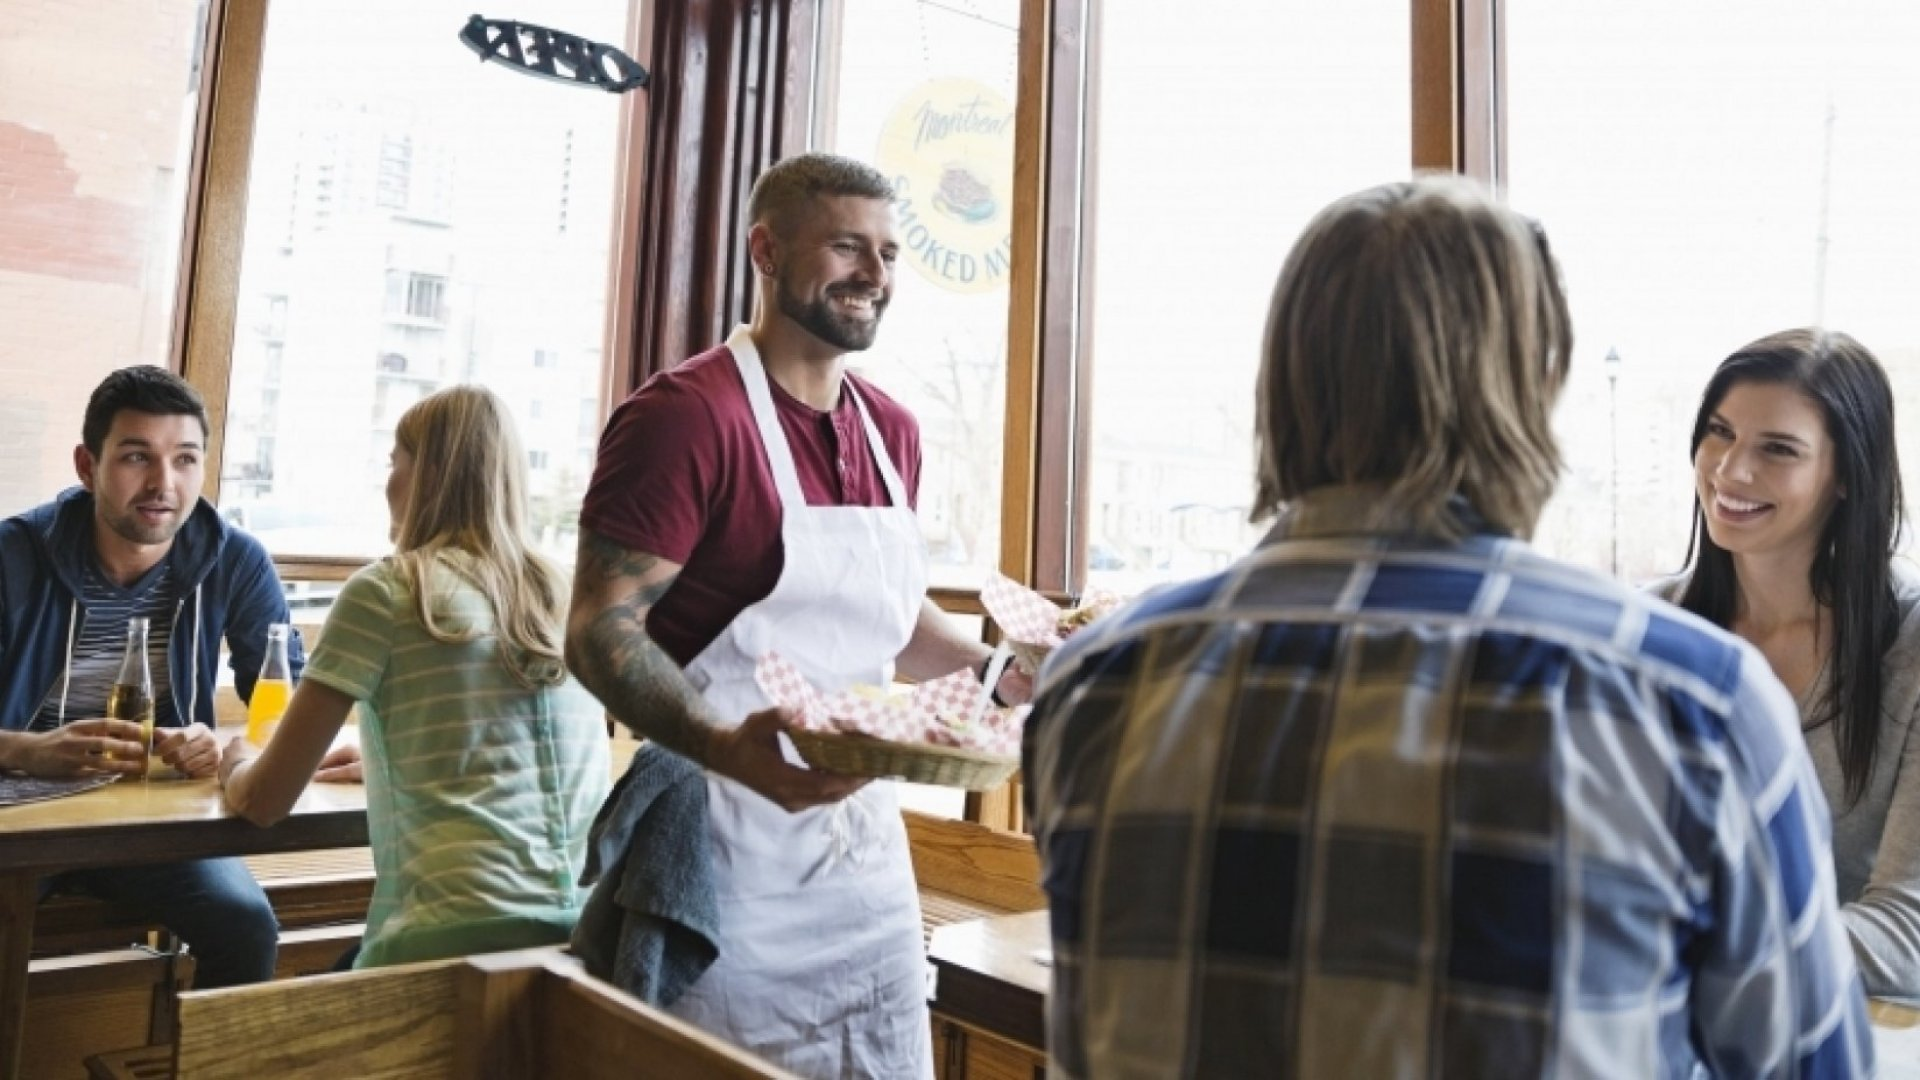 5 Things Customers Want All Startup CEOs to Know